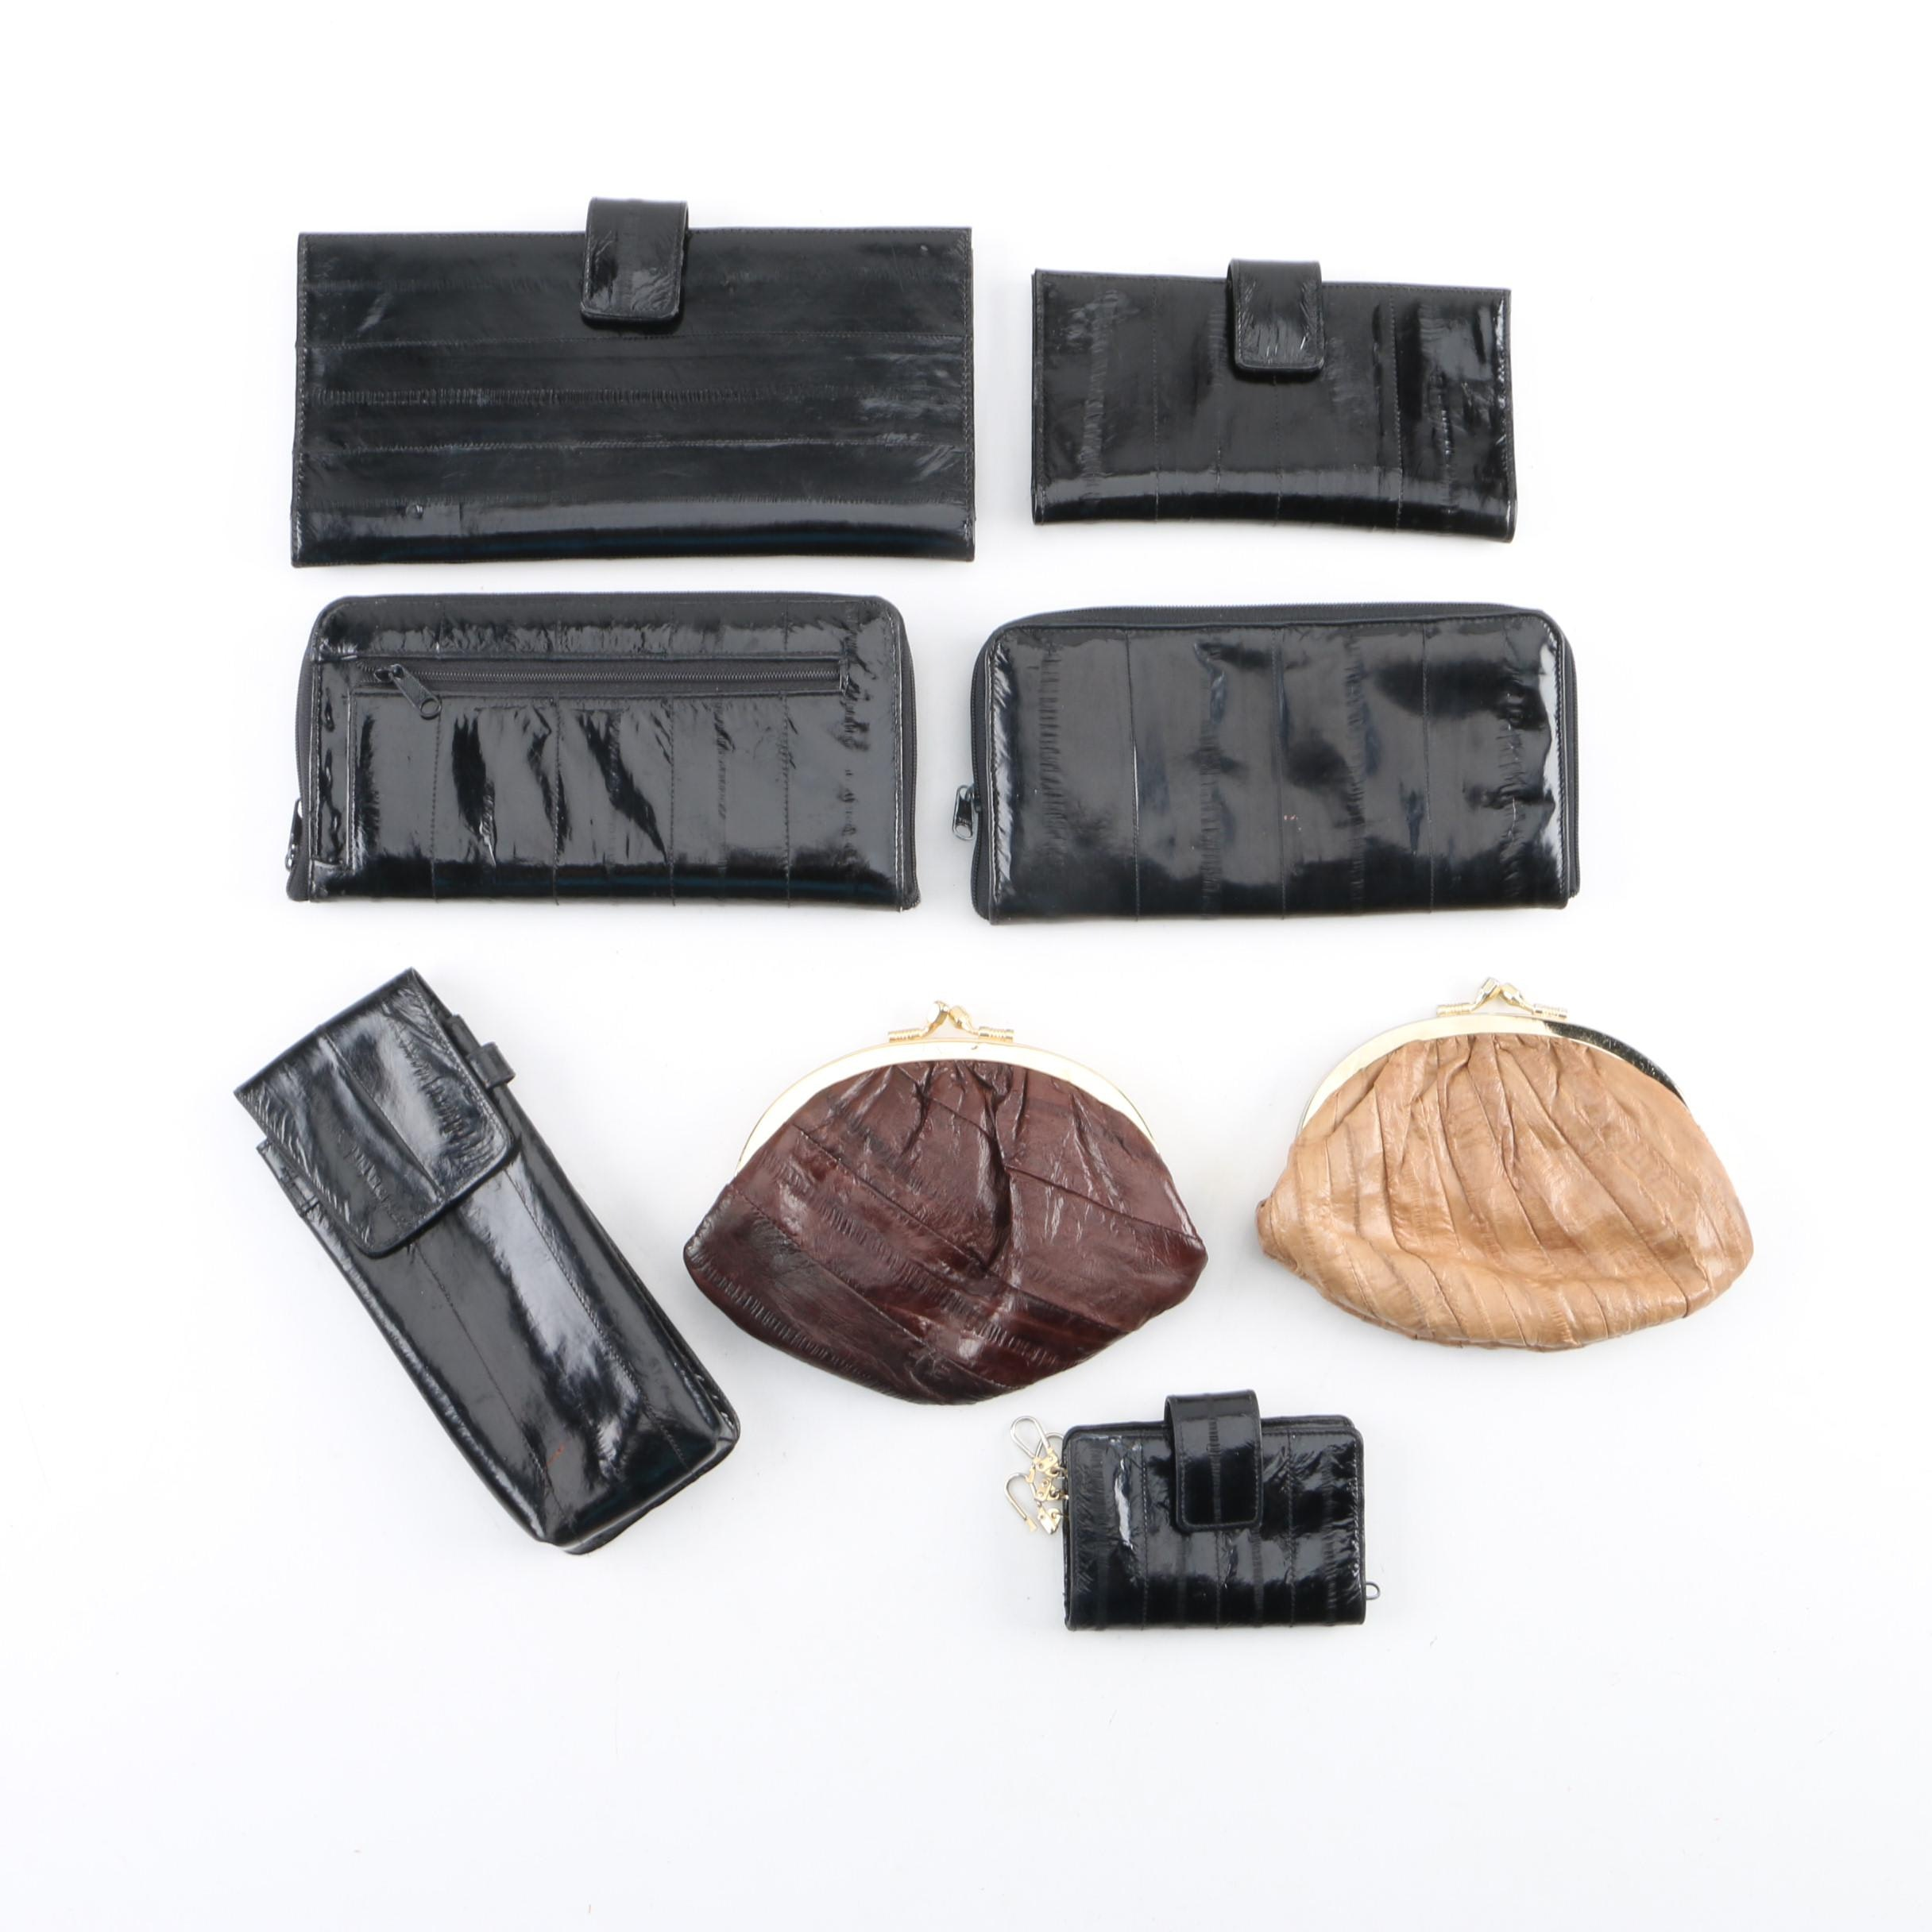 Vintage Eel Skin Clutches, Wallets and other Accessories